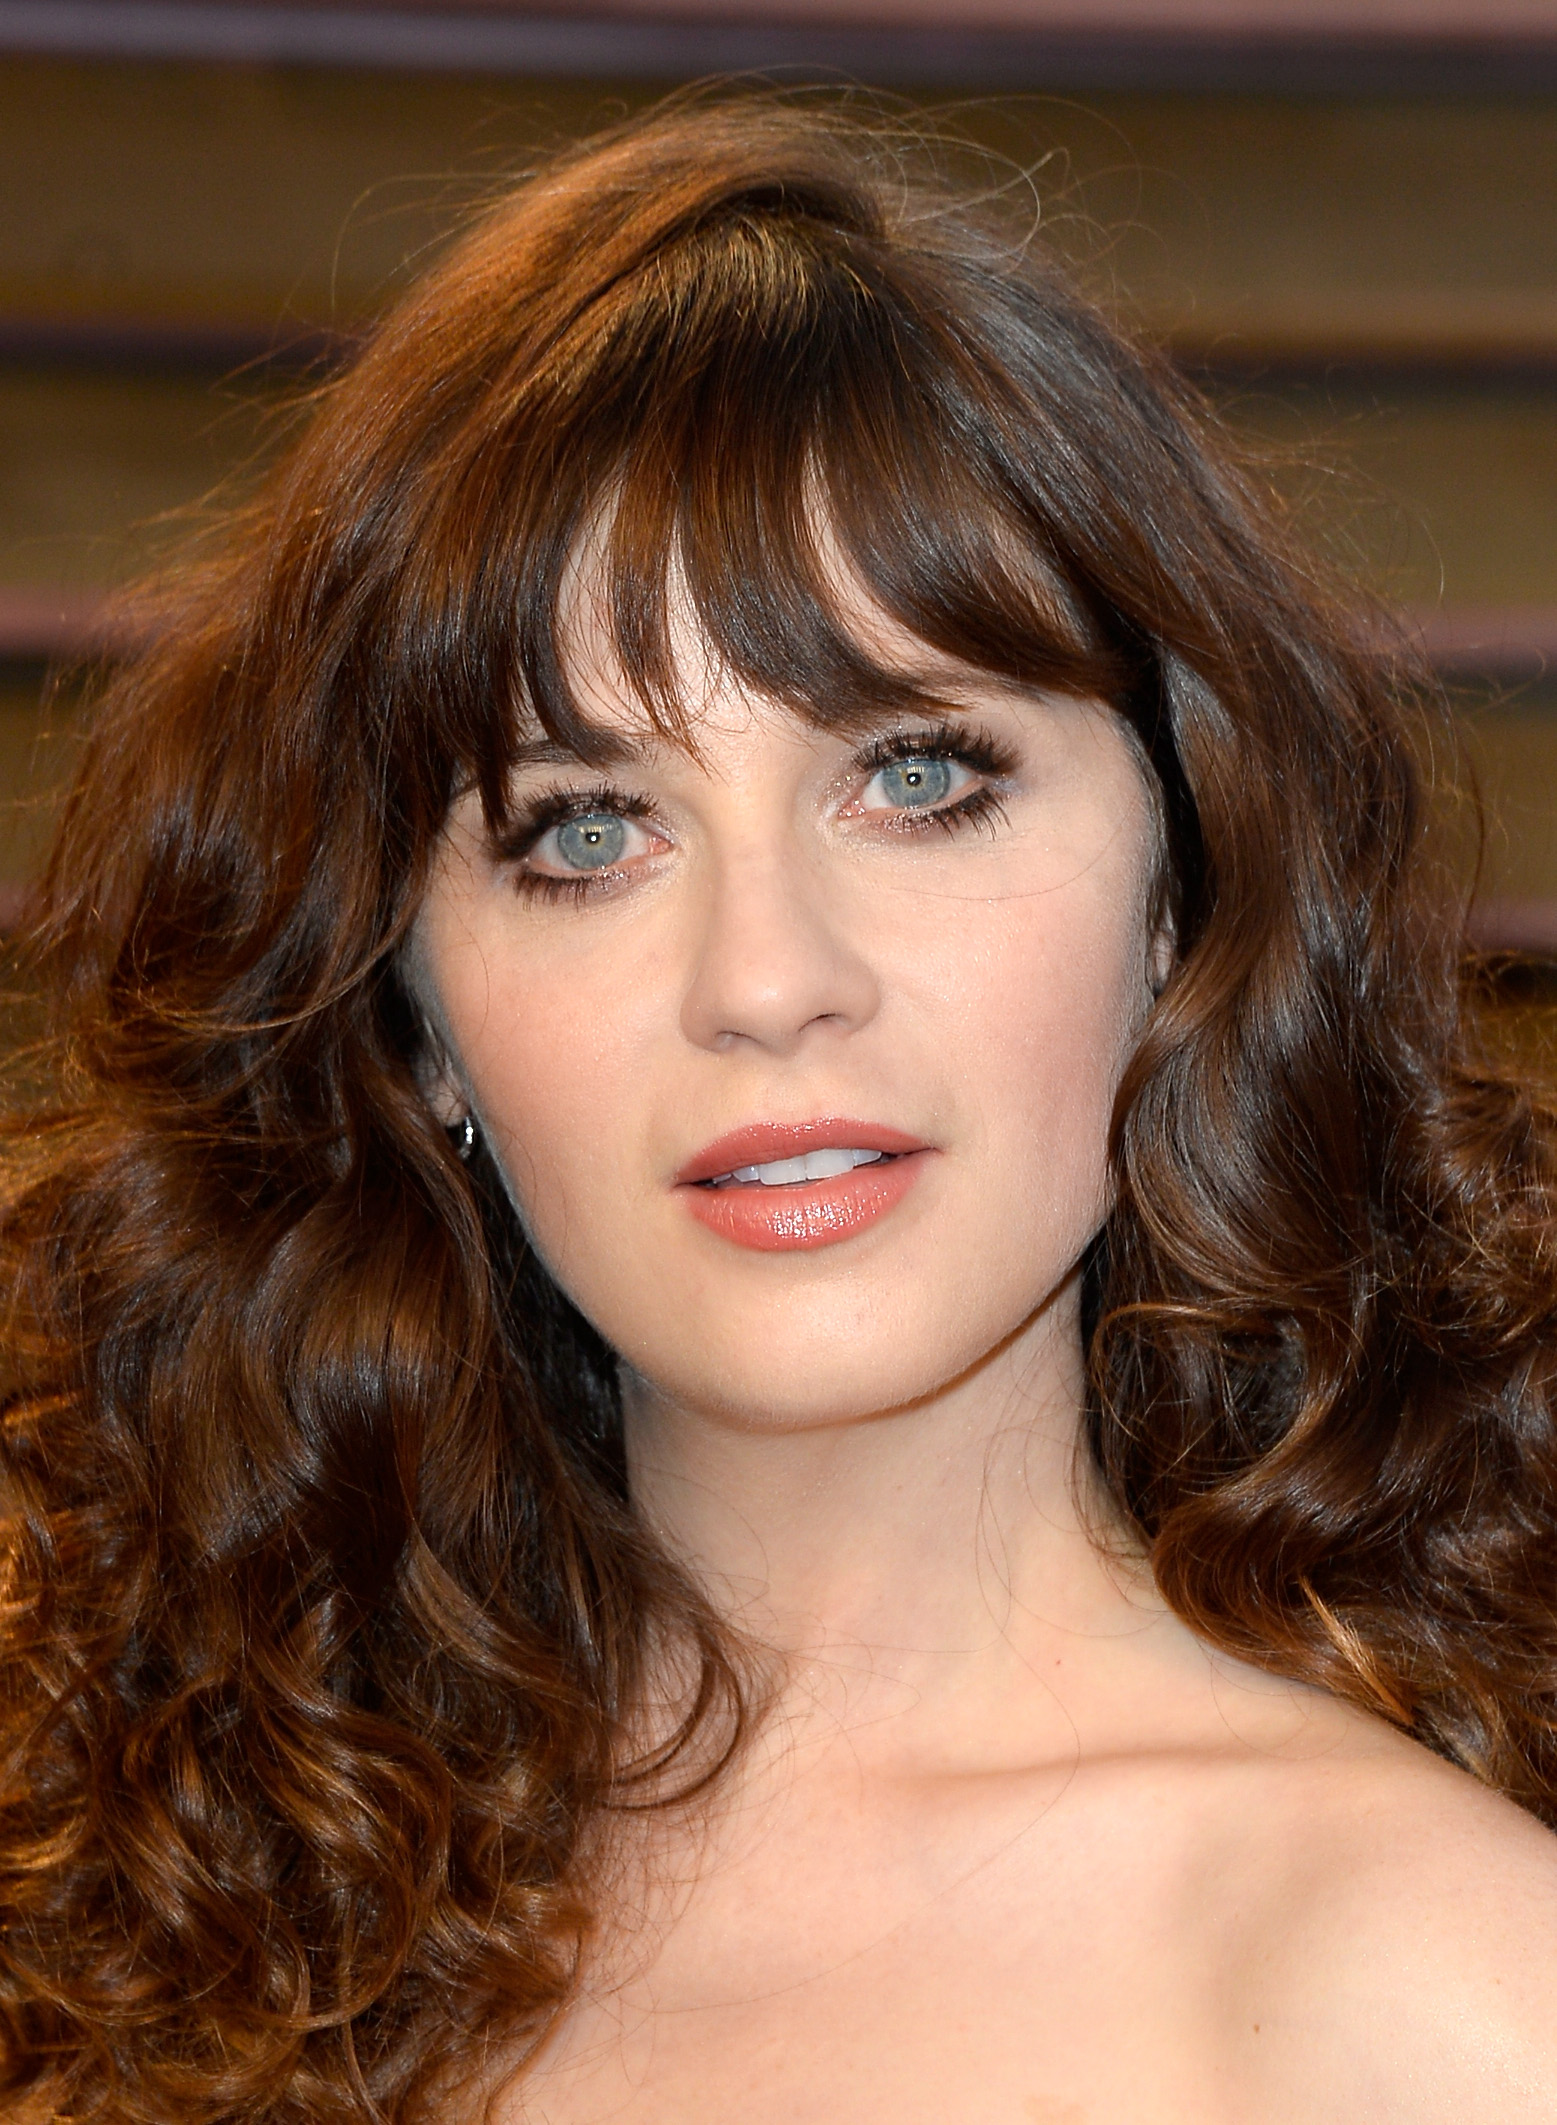 1562861213_ithopoioi-pou-exoun-groups-zooey-deschanel-jpg